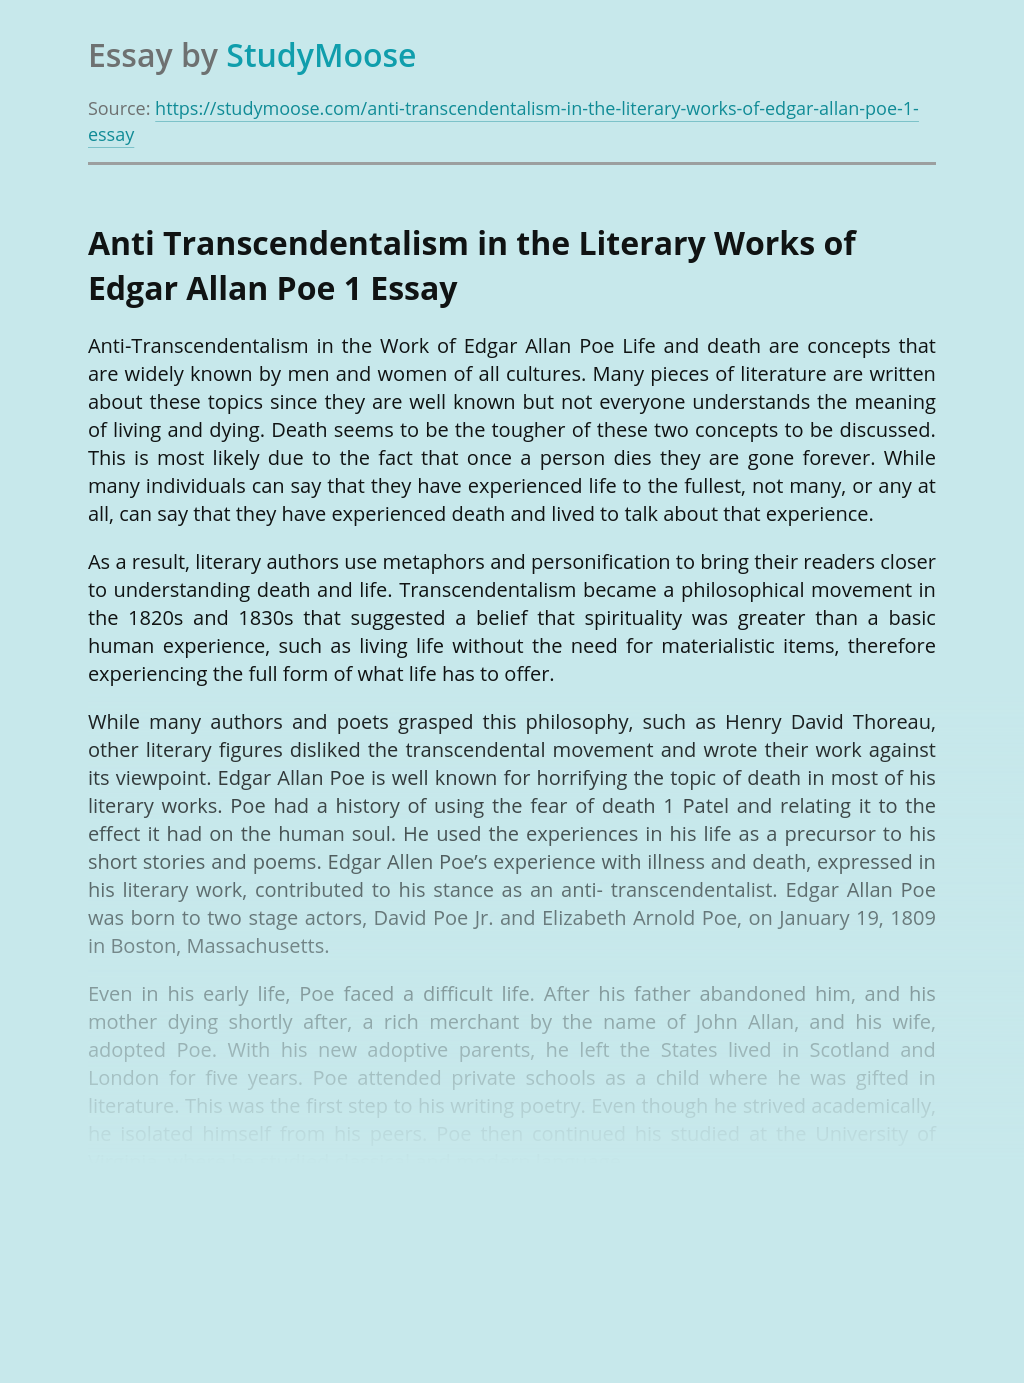 Anti Transcendentalism in the Literary Works of Edgar Allan Poe 1